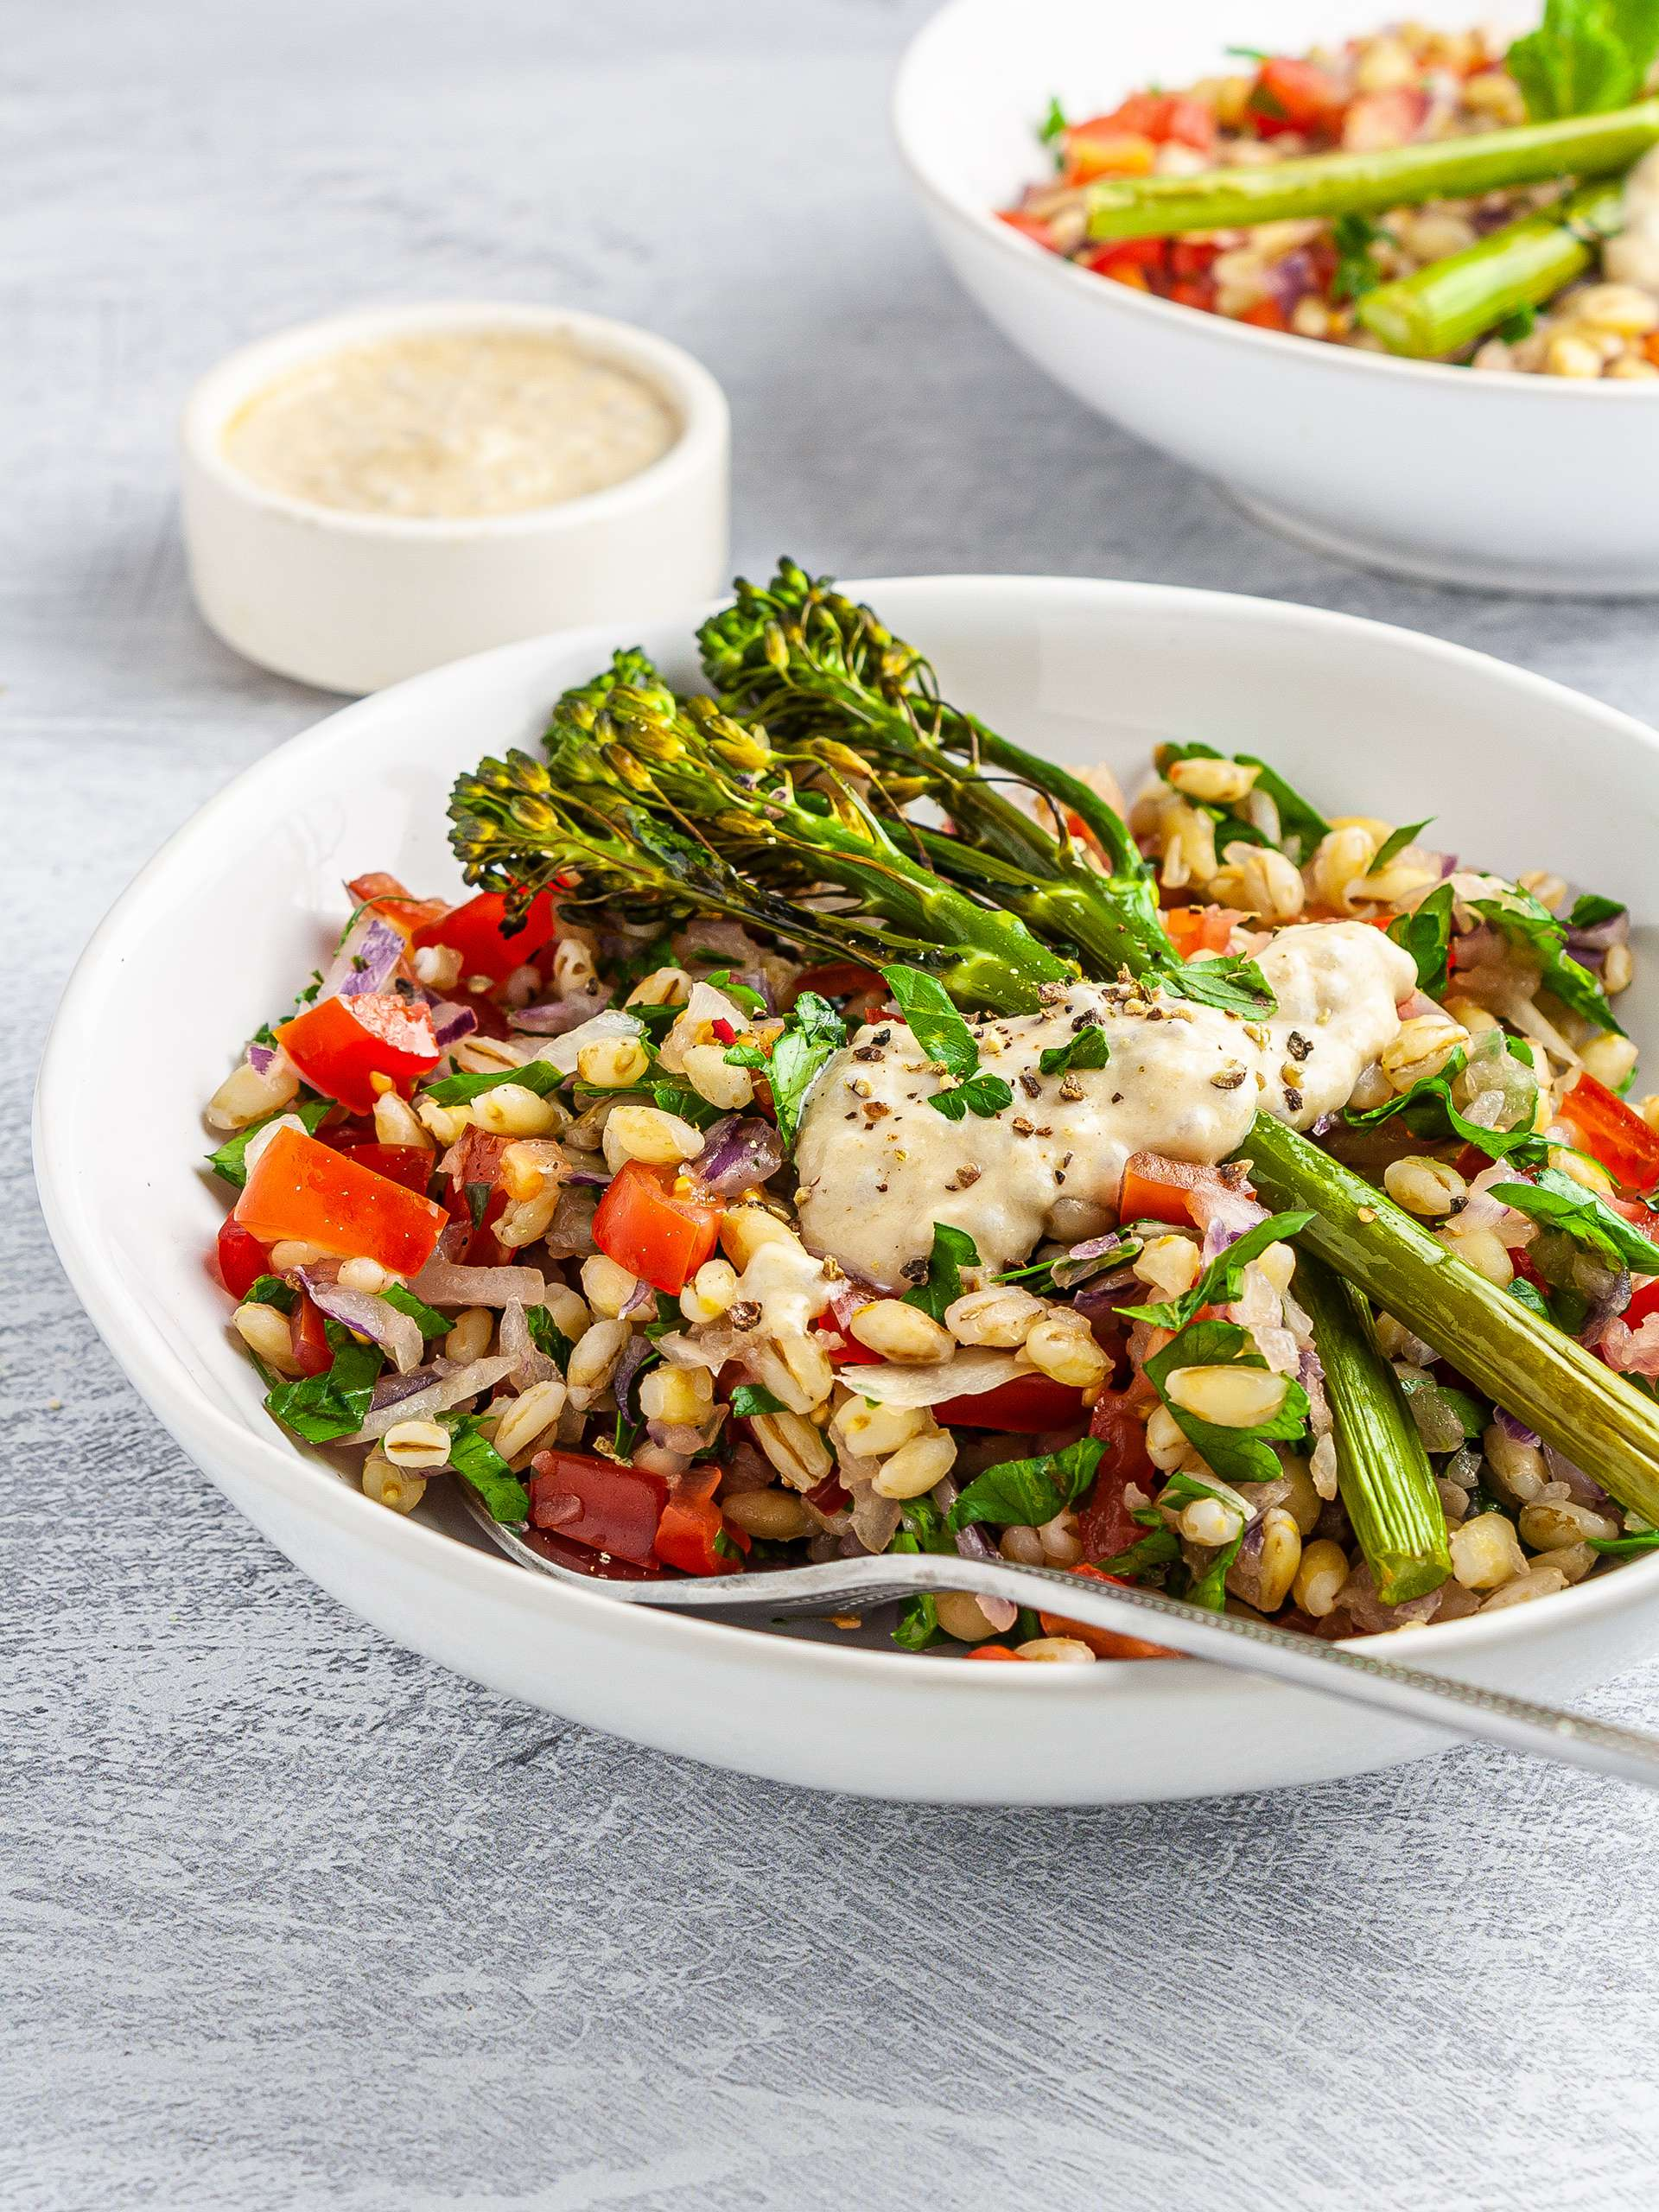 Barley Tabbouleh with Tenderstem Broccoli